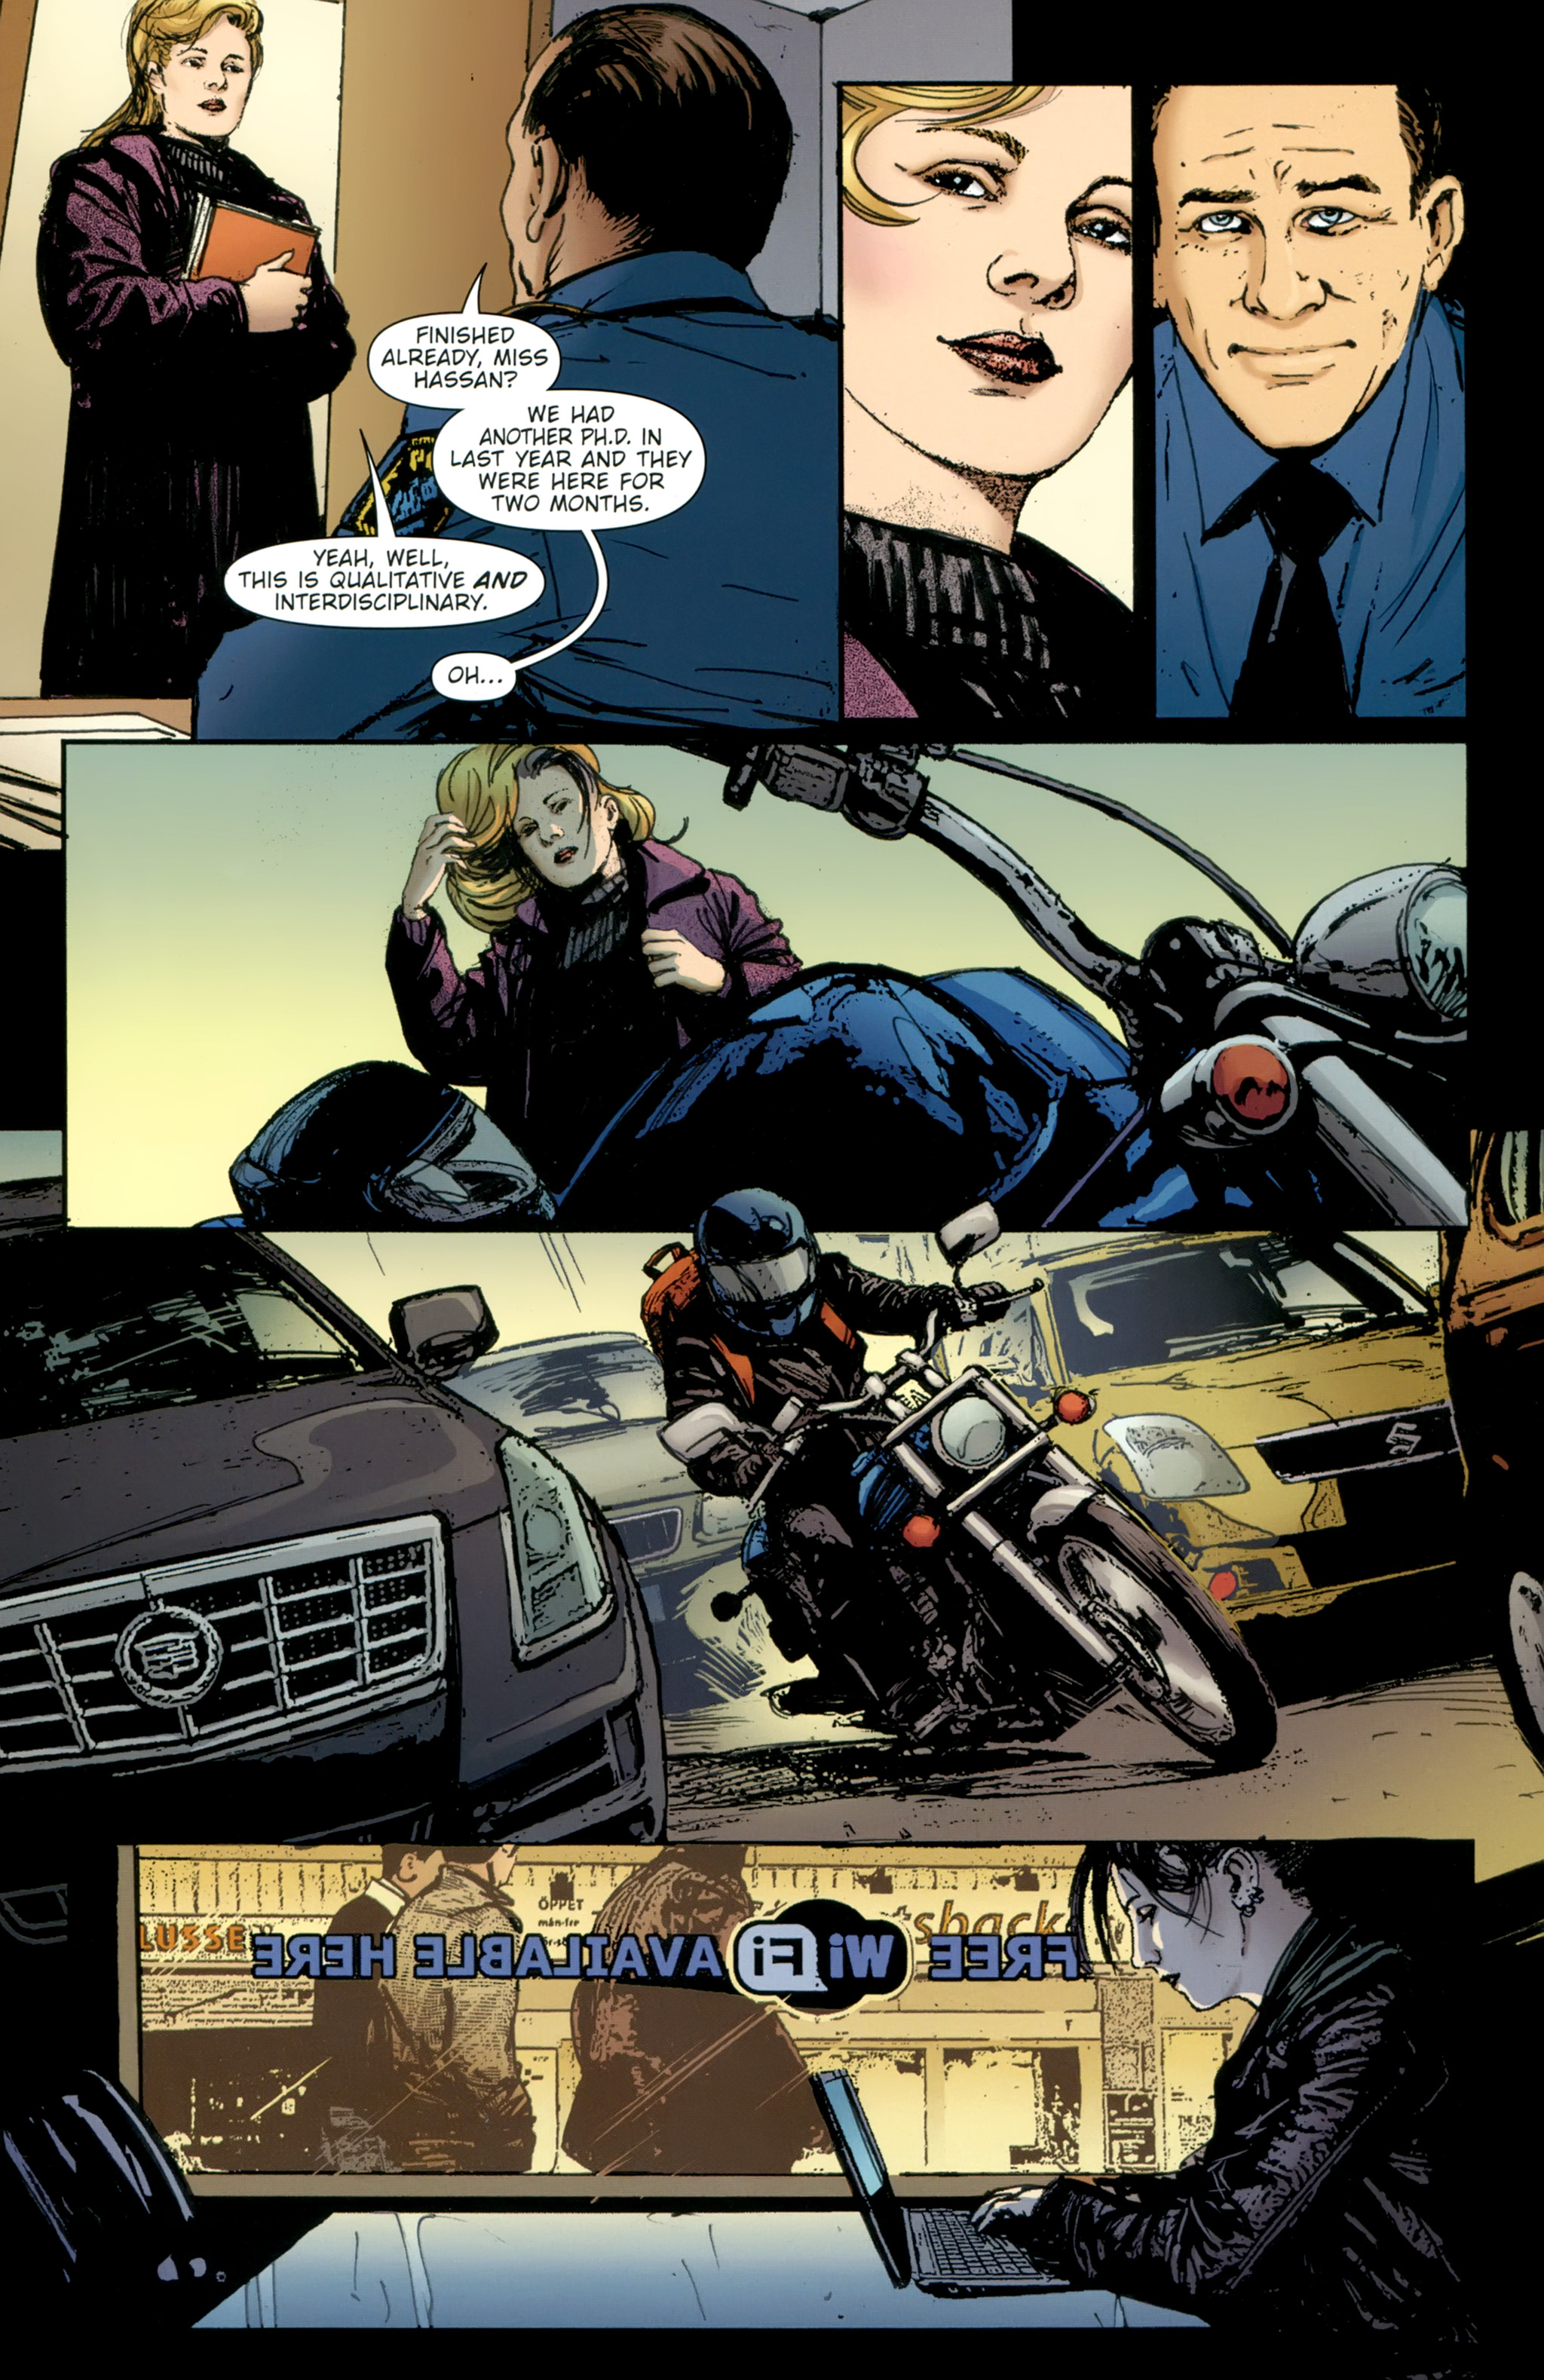 Read online The Girl With the Dragon Tattoo comic -  Issue # TPB 2 - 55